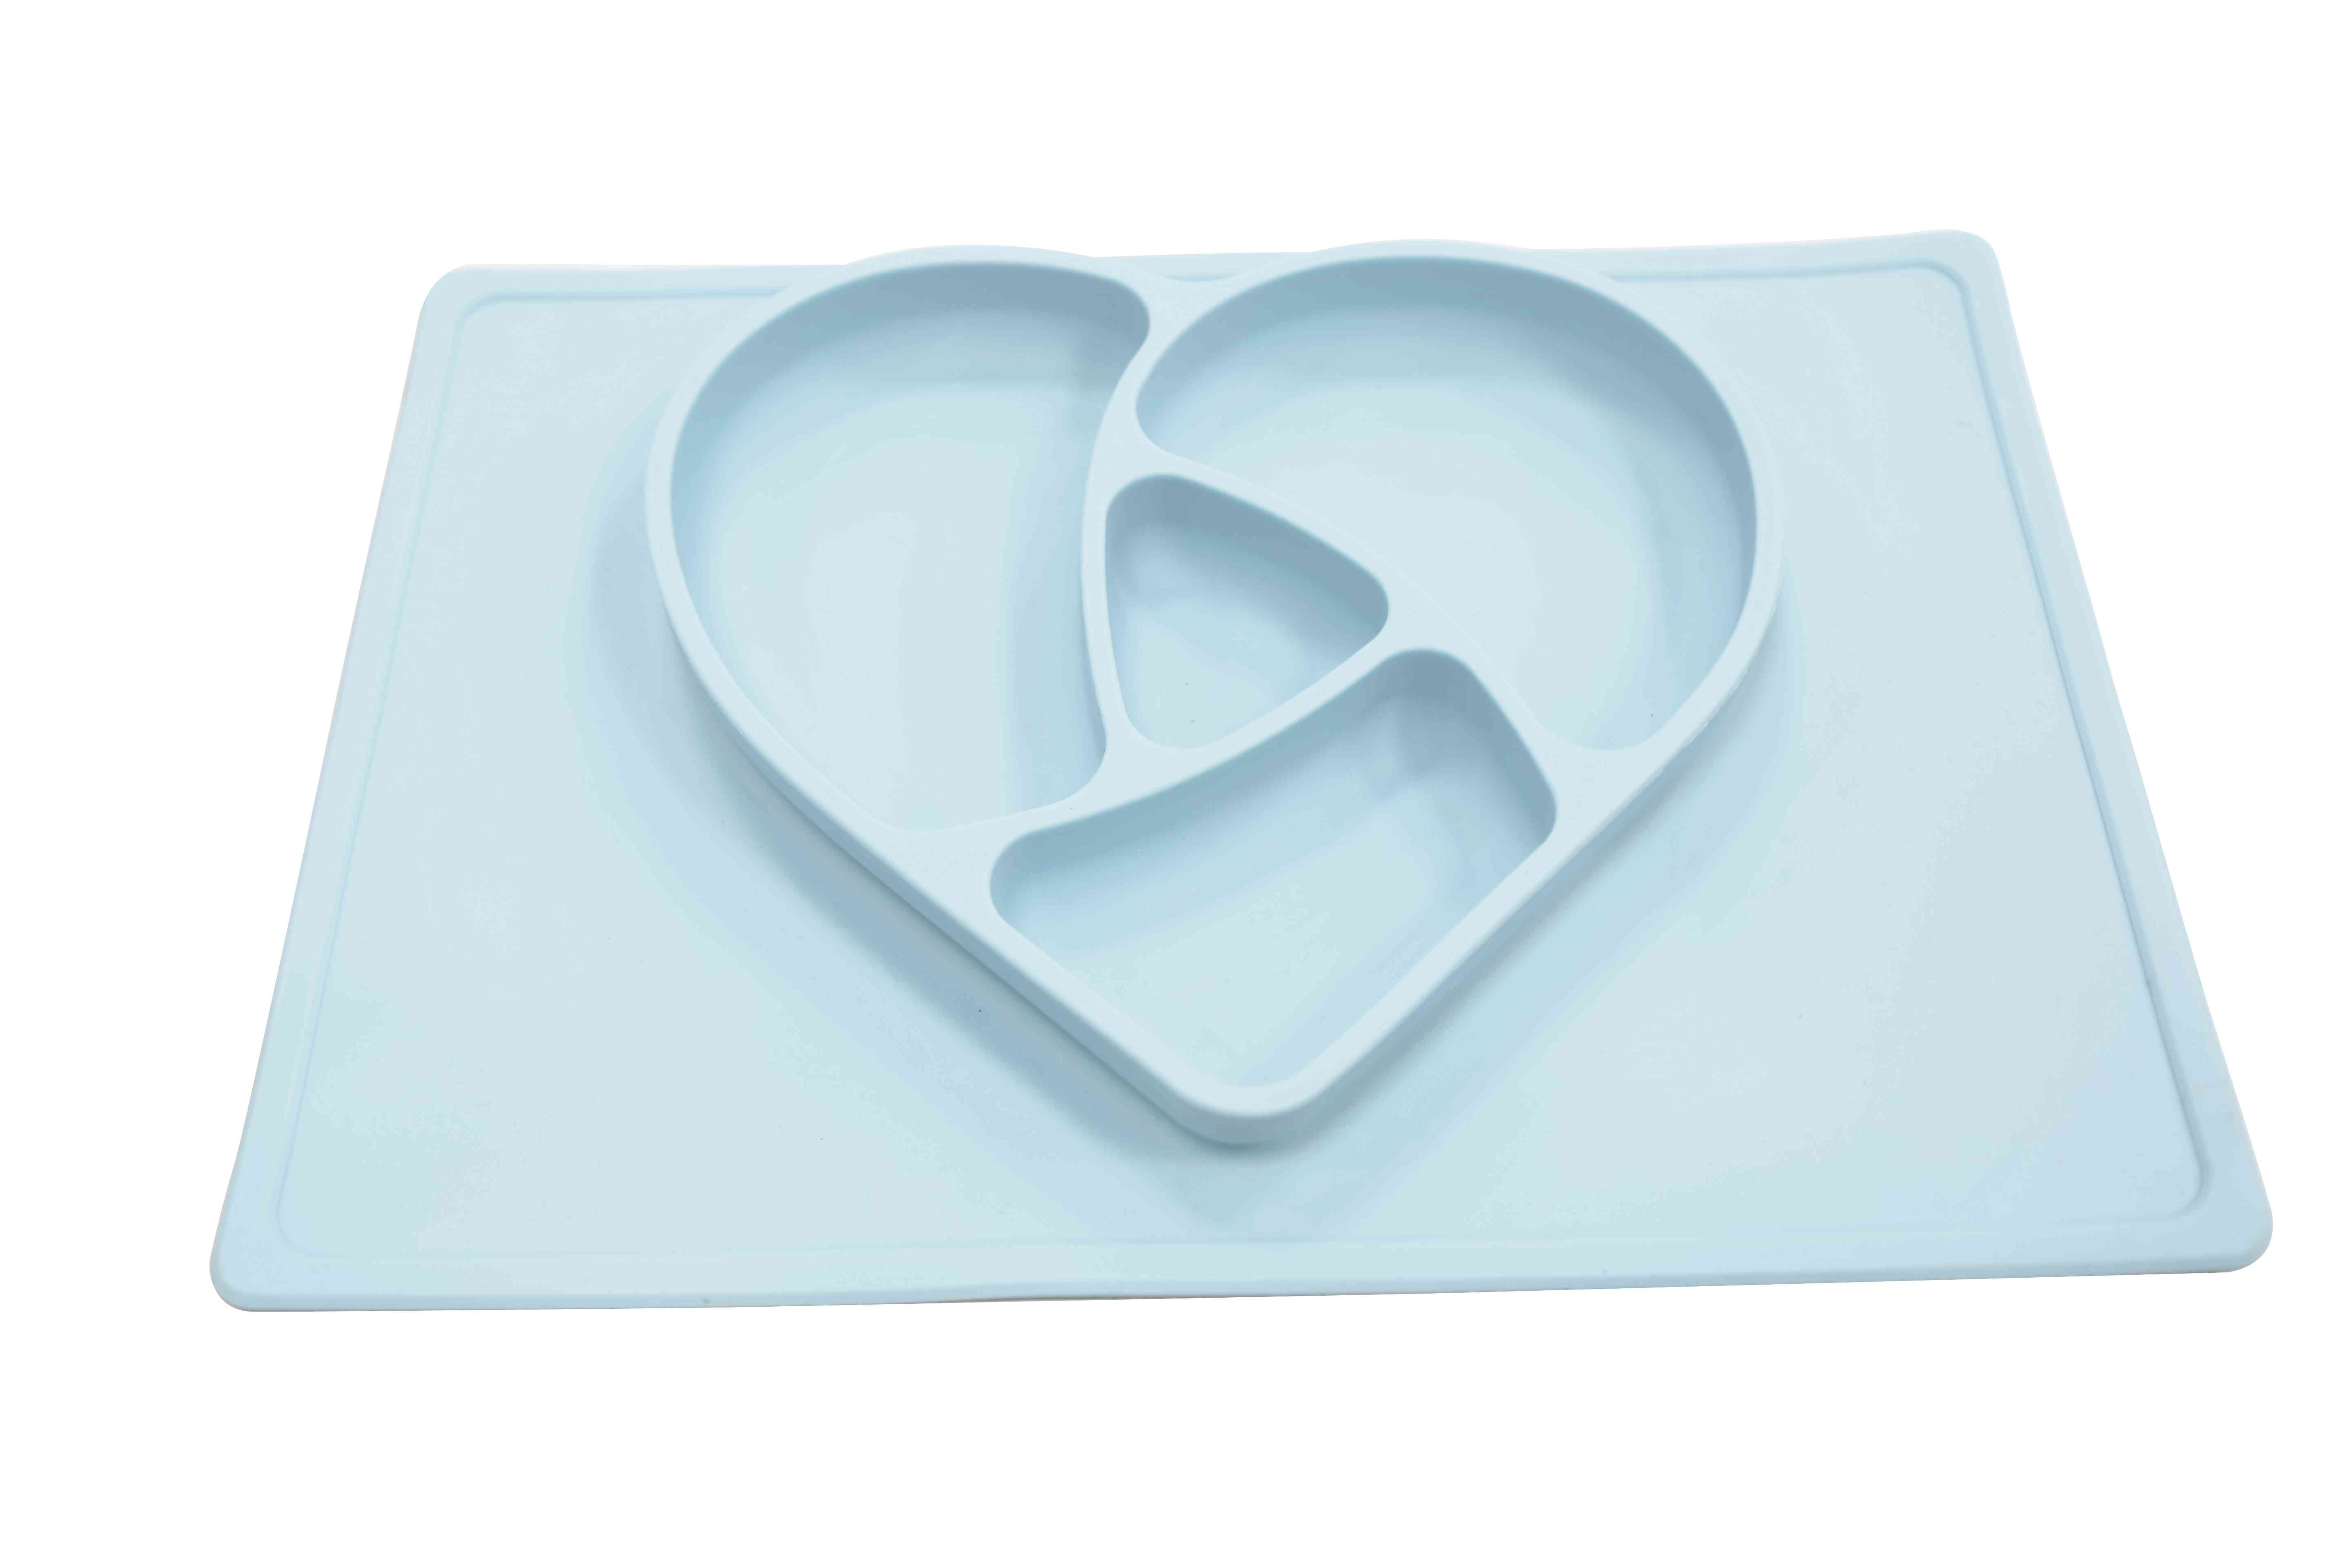 Love silicone divided plates for toddler children kids infants easily wipe clean